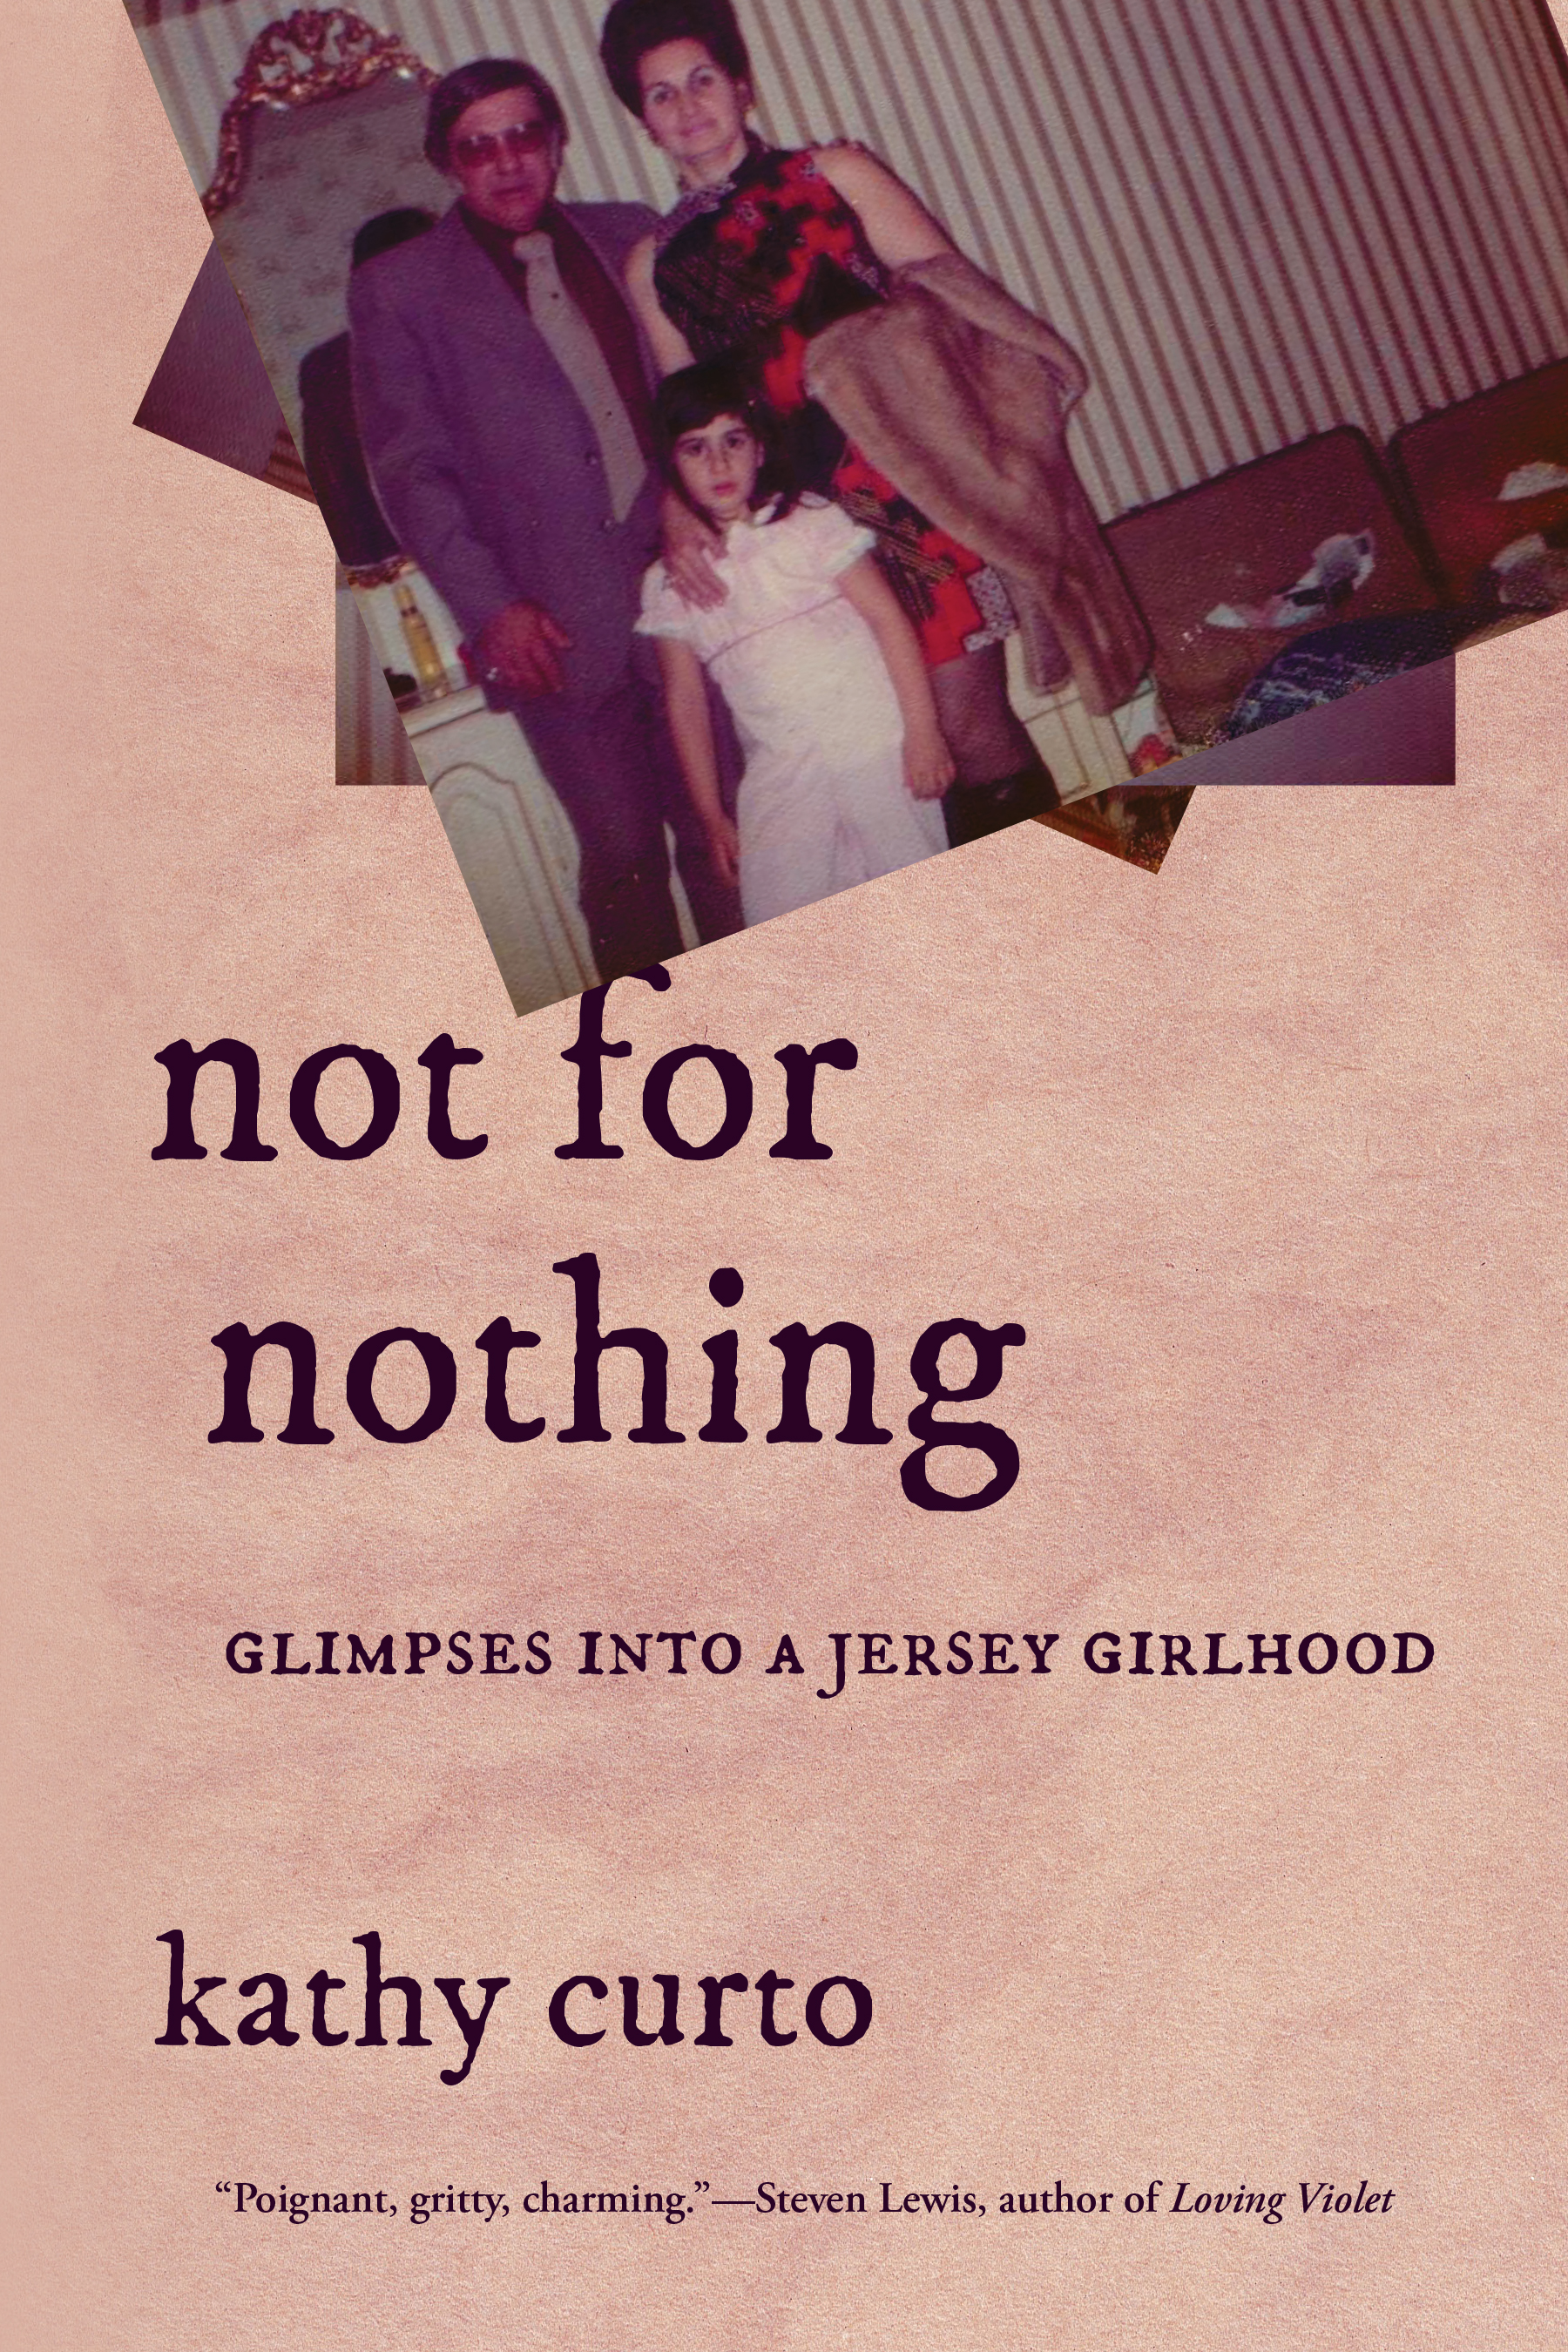 Not for Nothing: Glimpses into a Jersey Girlhood